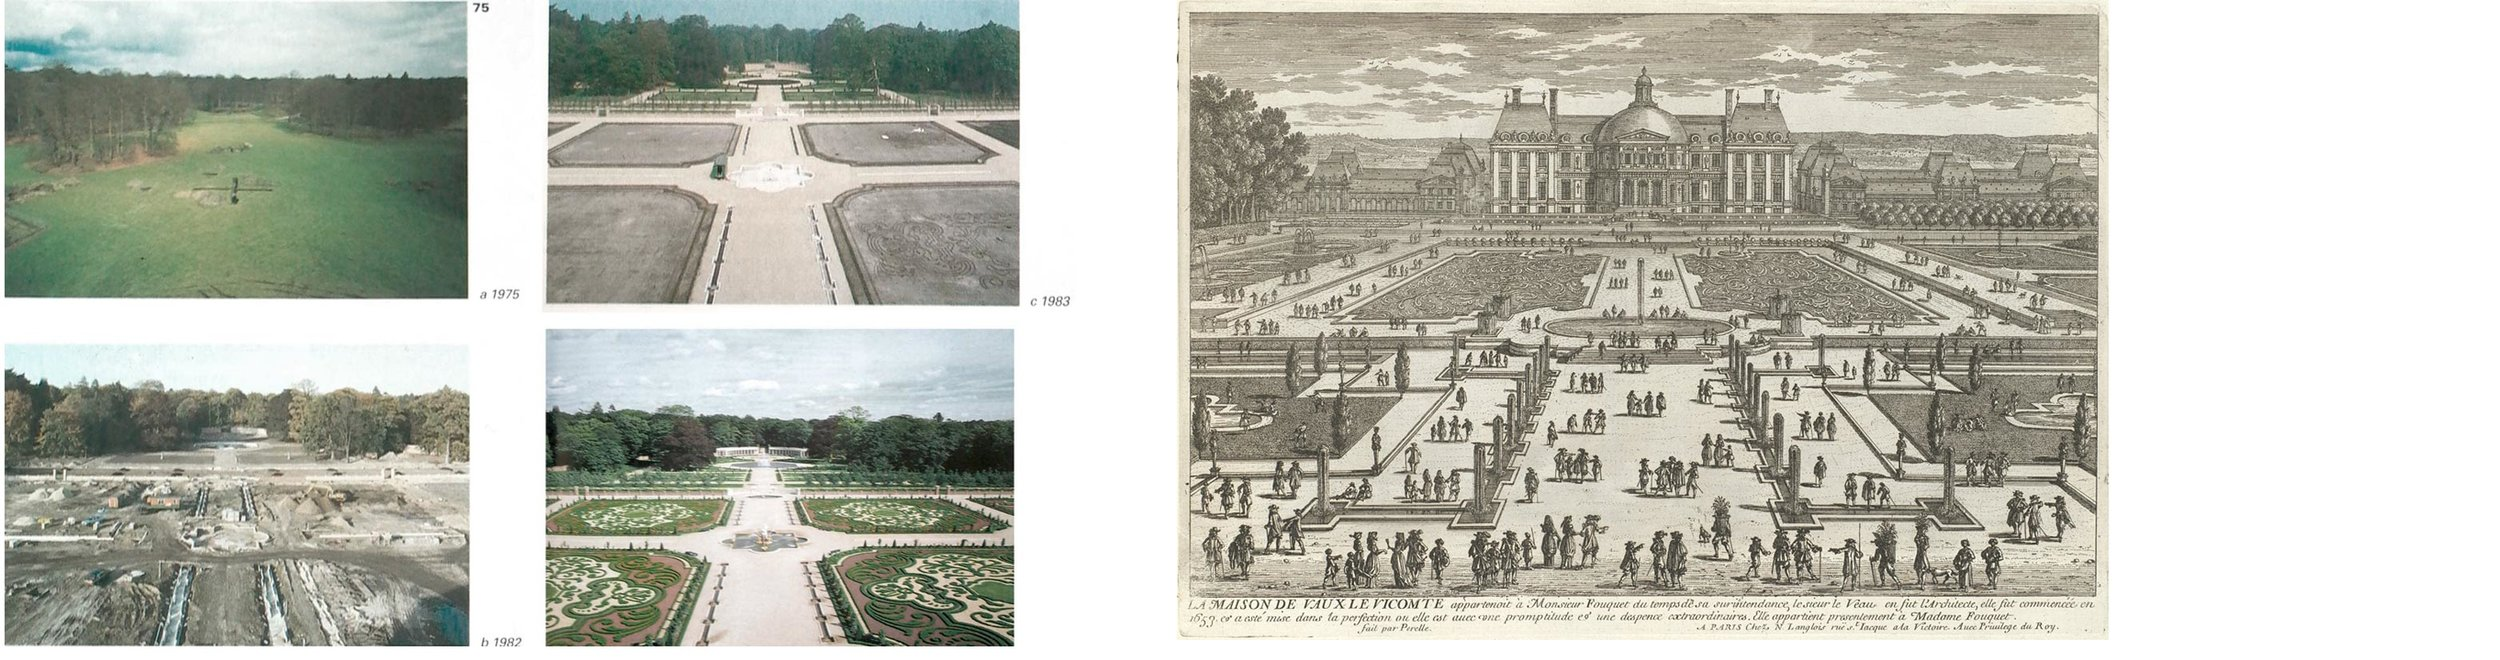 Rebuilding of the gardens of Het Loo, 1980 | Adam Perelle,  View of Vaux-Le-Vicomte , 1680